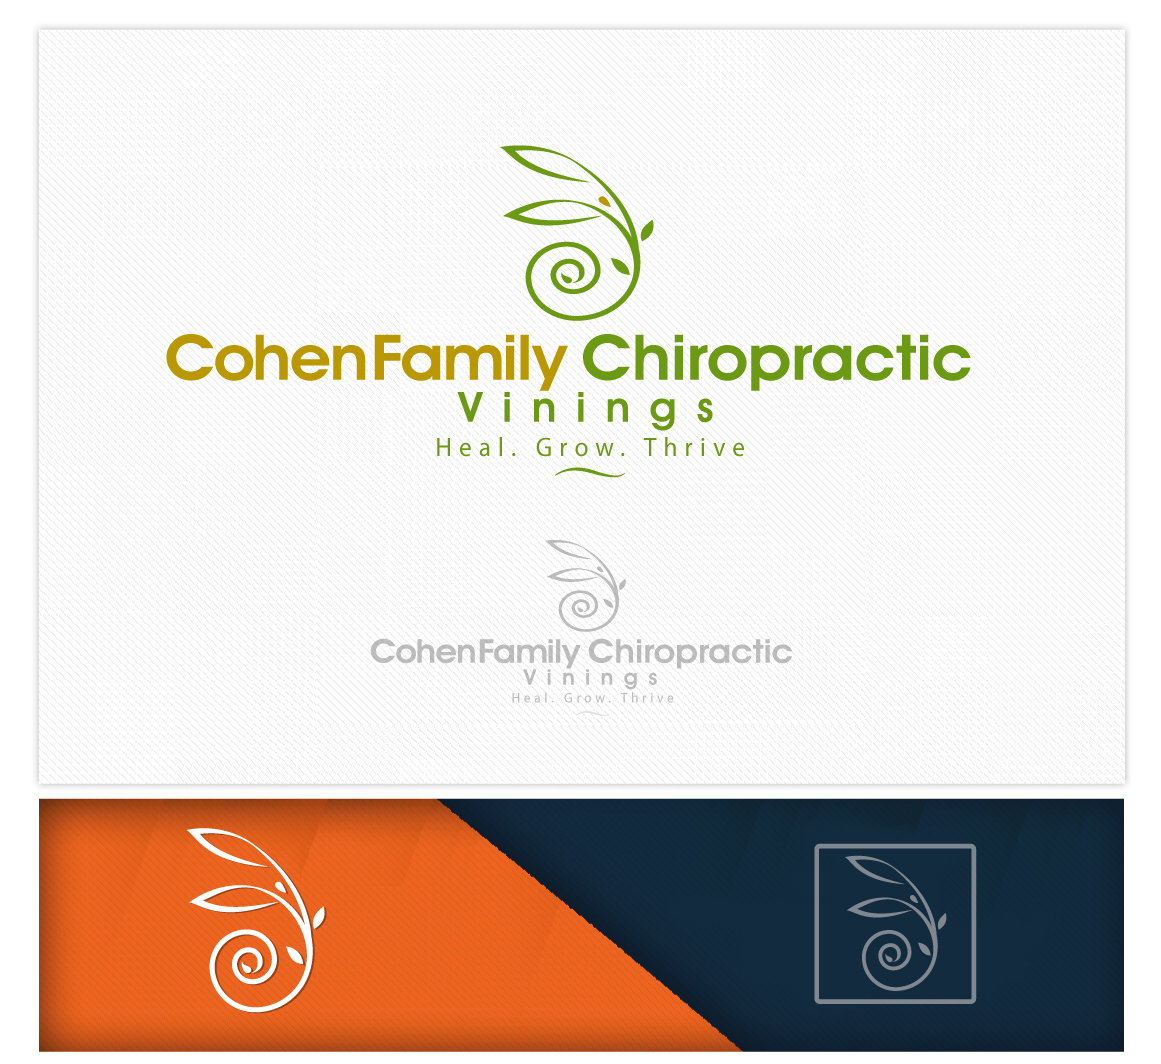 Logo Design by logodesign7434 - Entry No. 53 in the Logo Design Contest Unique Logo Design Wanted for Cohen Family Chiropractic.